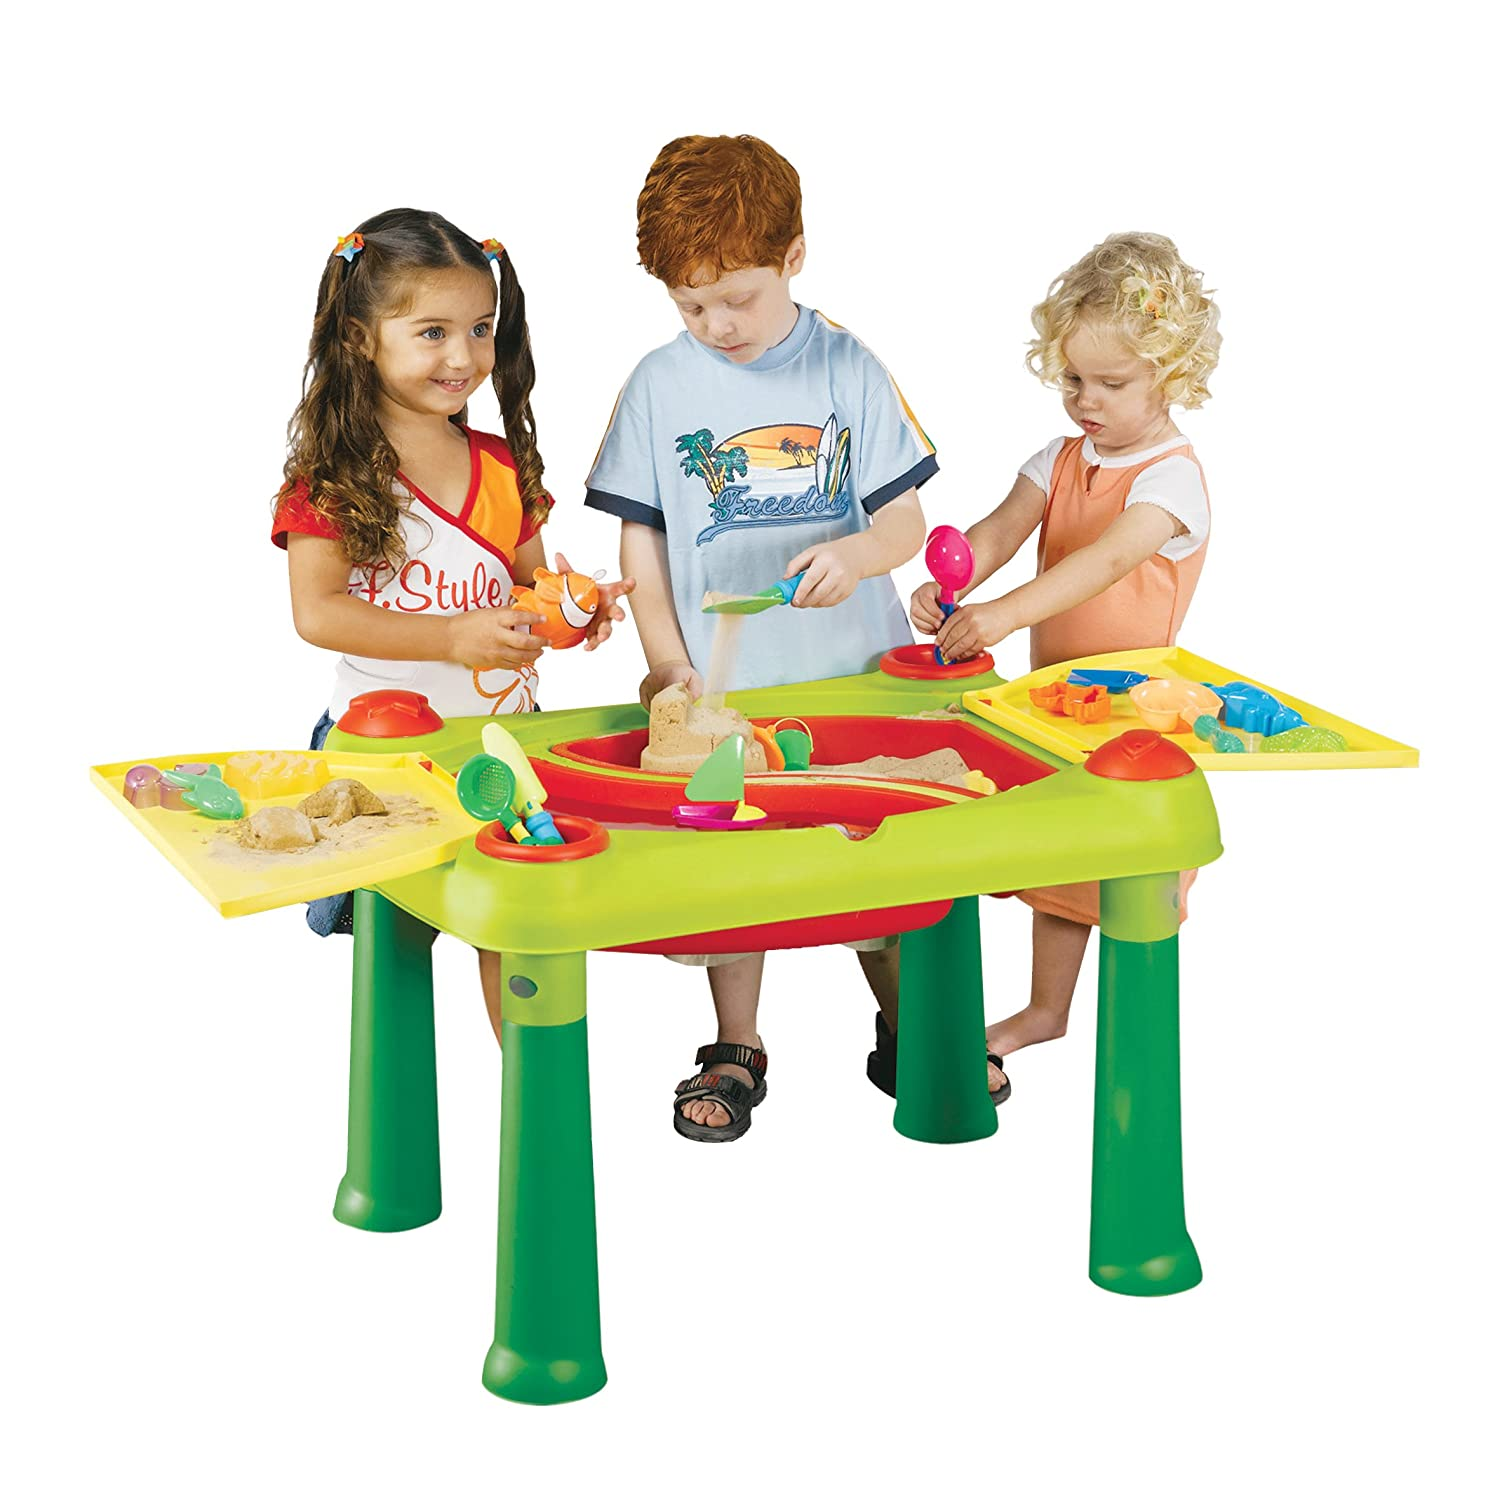 Keter IndoorOutdoor Childrens Sand and Water Play Table